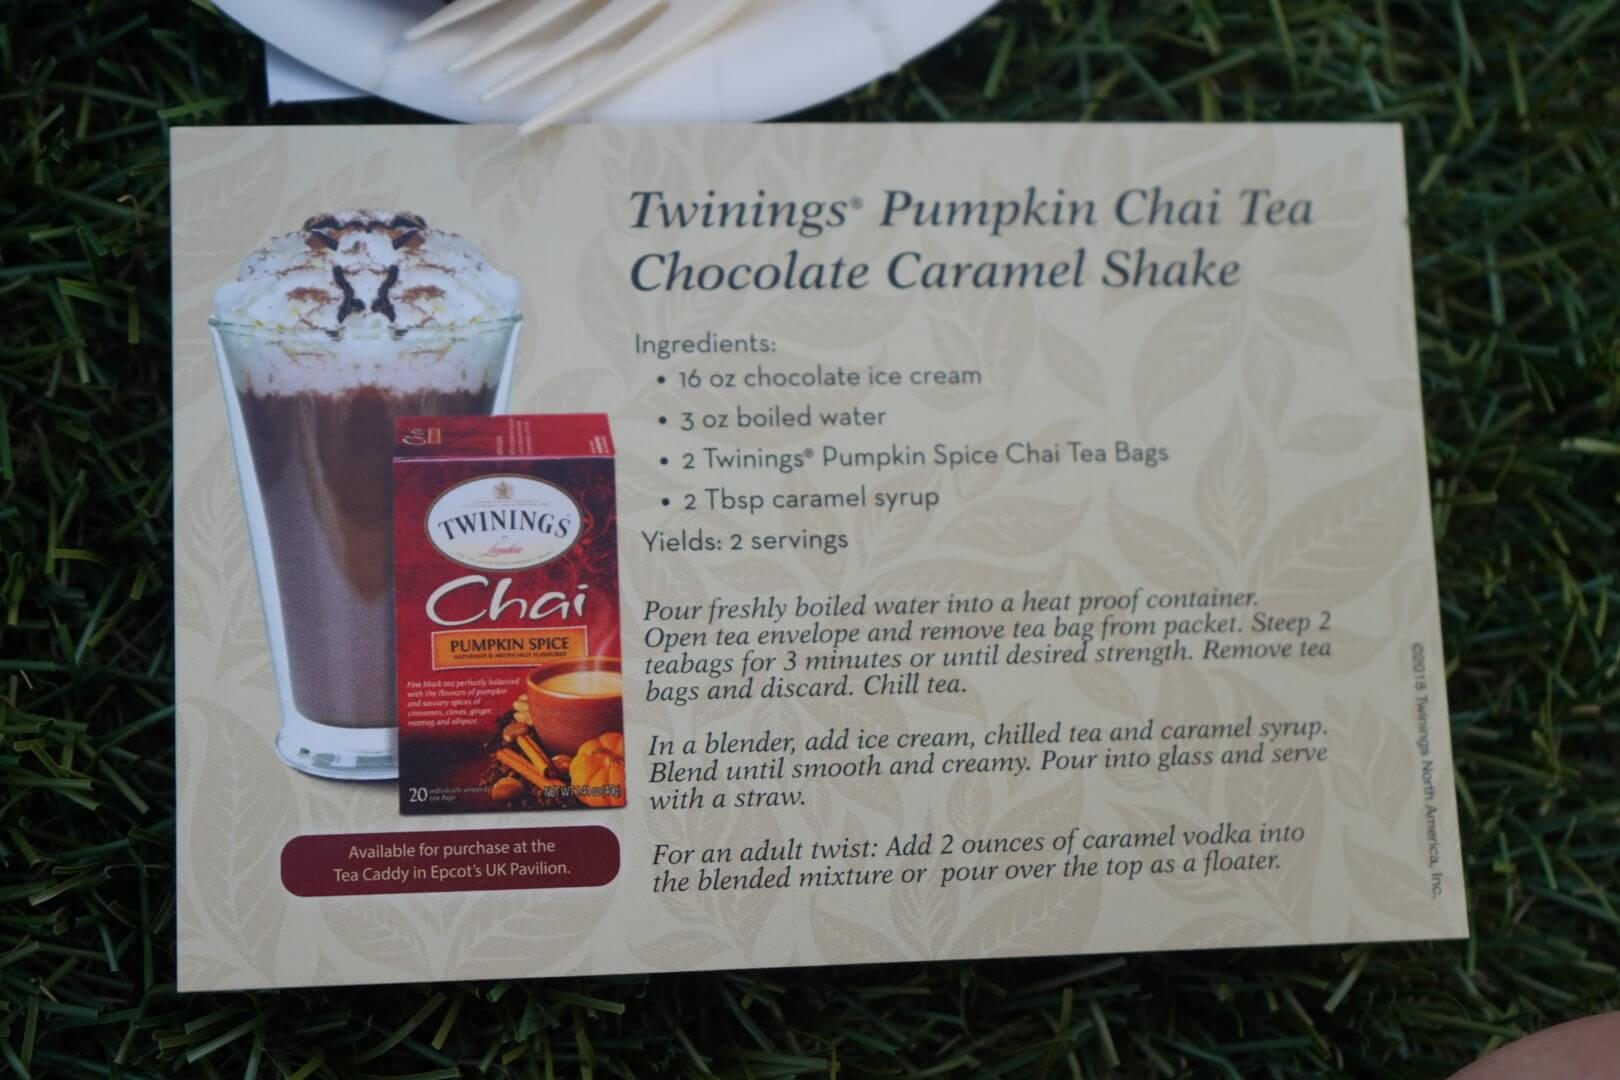 The recipe for the Pumpkin Chai Tea Chocolate Caramel Shake - Epcot Food & Wine Festival 2018